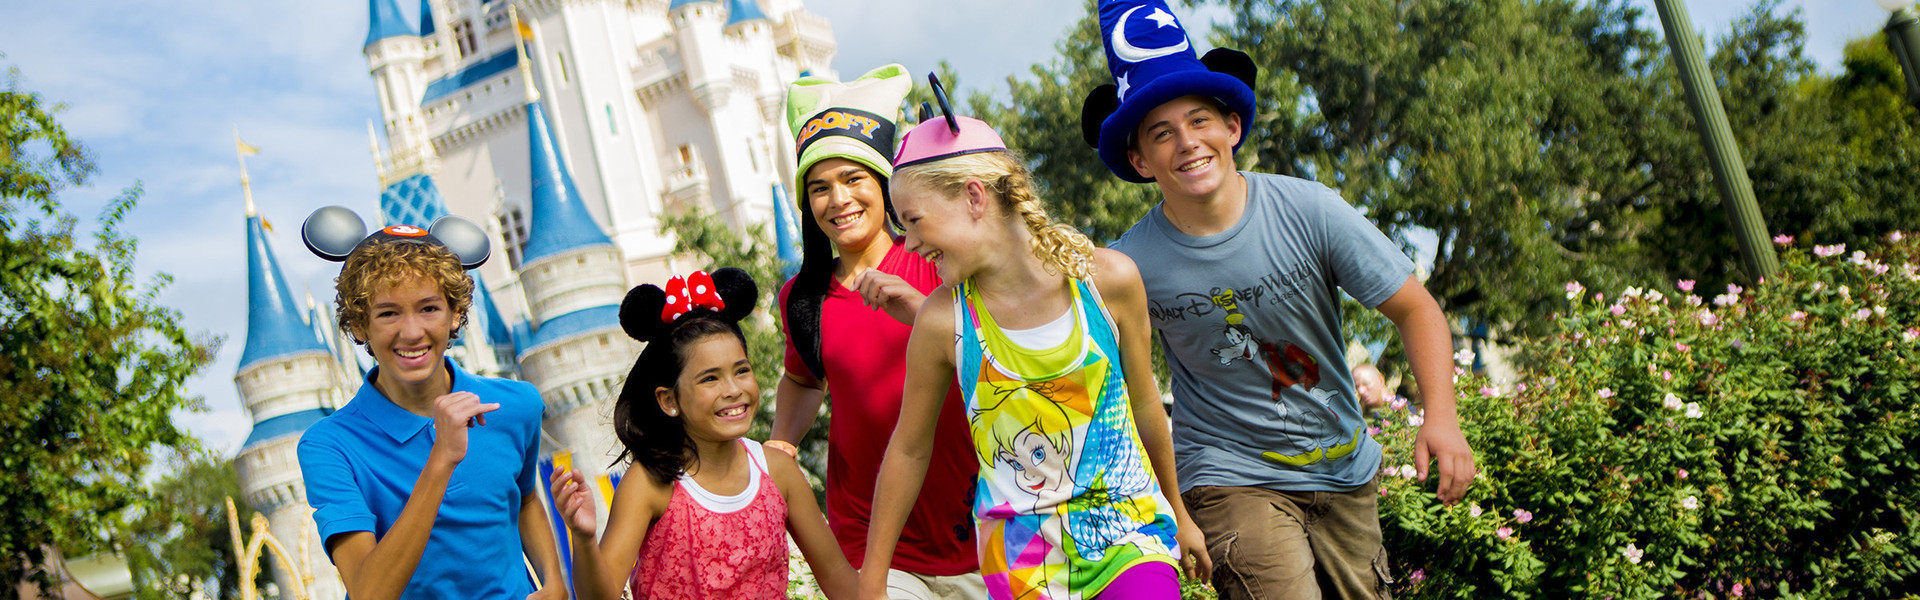 Attraction Tickets at Our Orlando Resort | Kids on Vacation